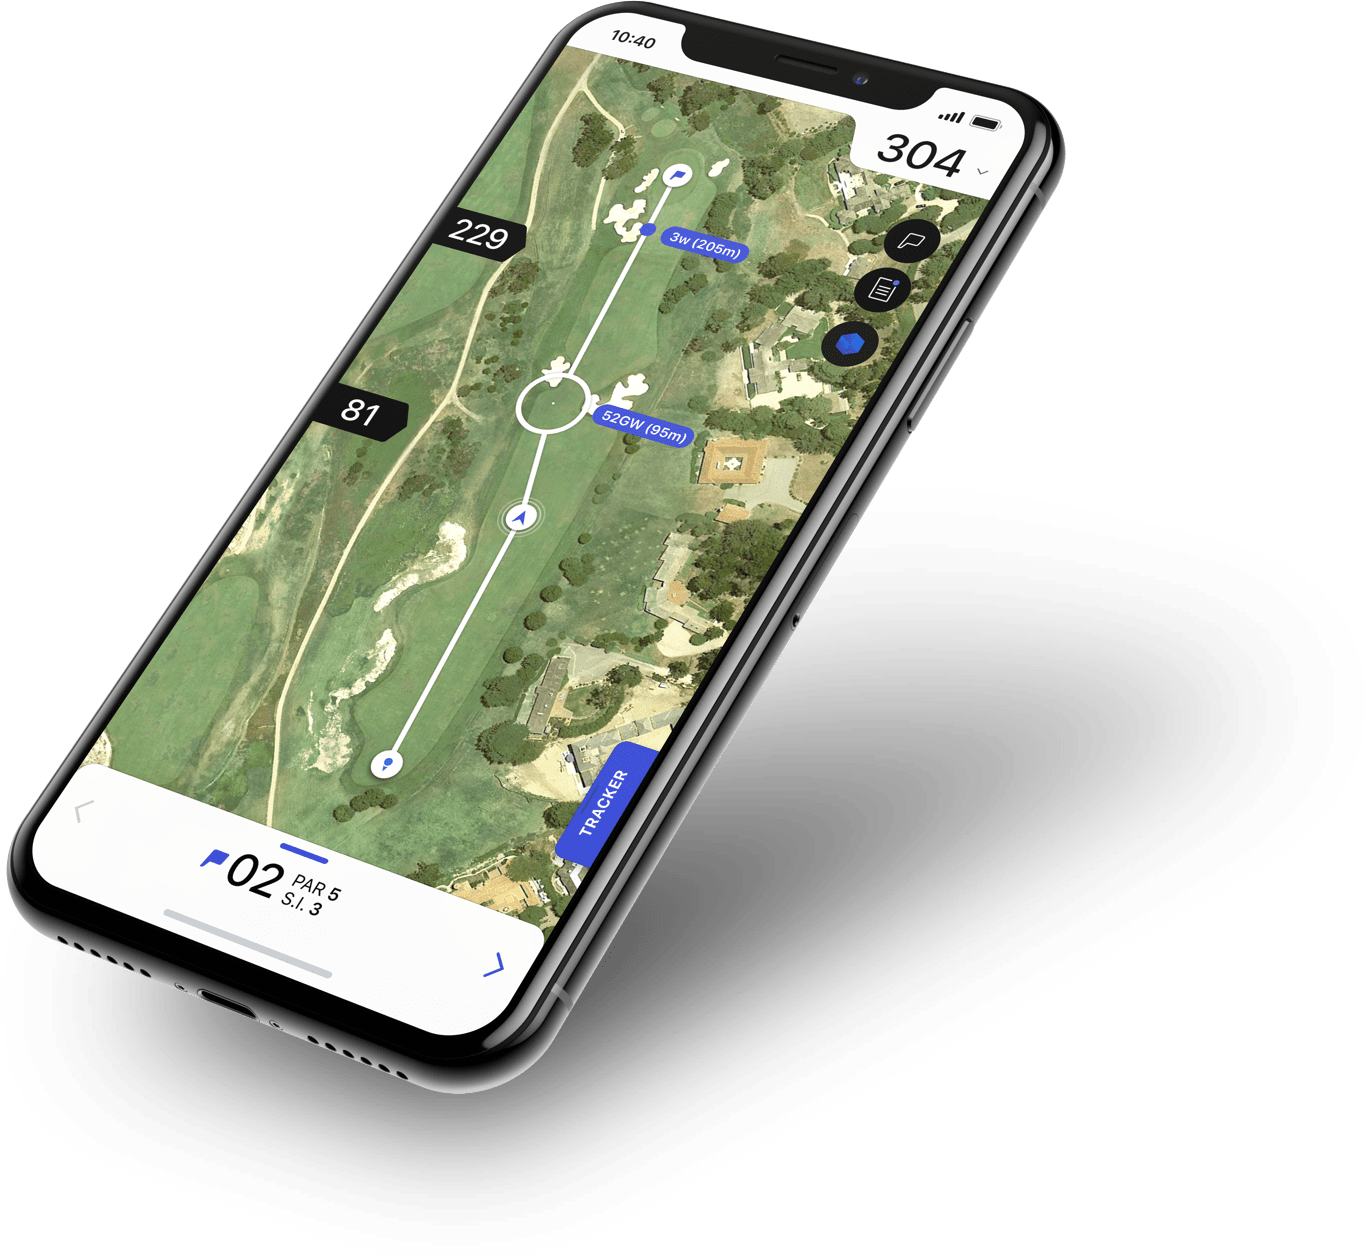 Keep score with a golf app you can download on your smartphone or smartwatch. (Featured: Hole 19 Golp App)